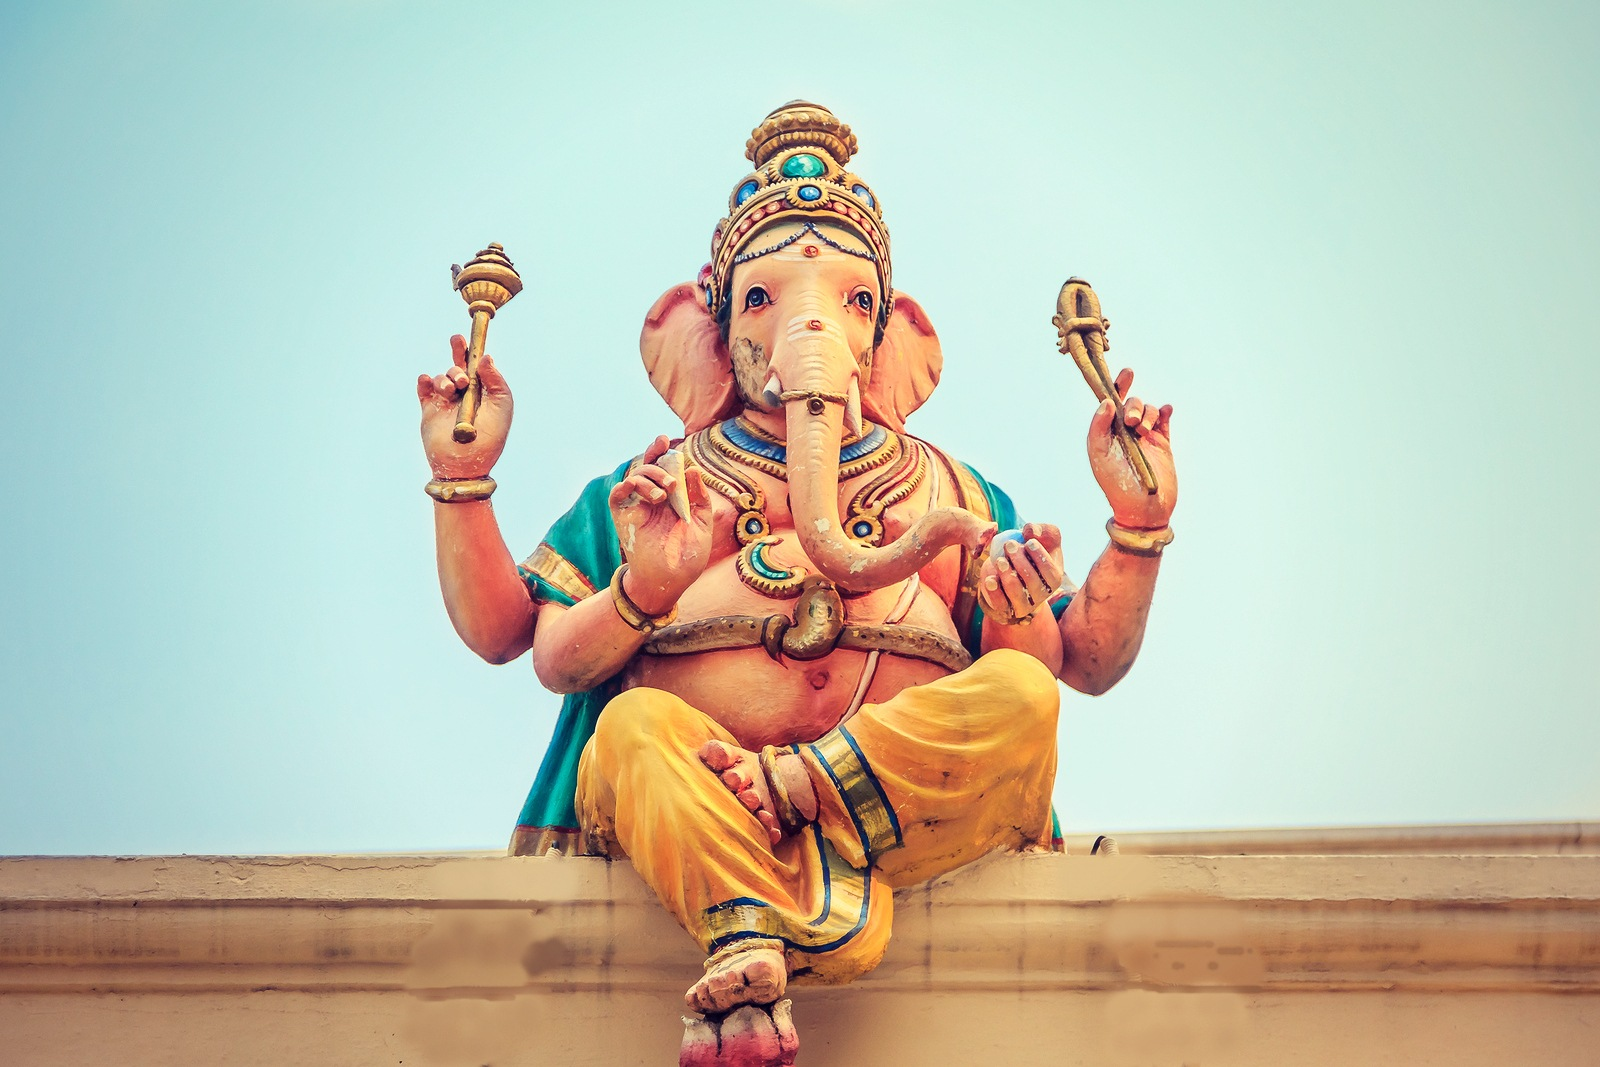 14 Secrets Of Ganesh Hidden In Plain Sight